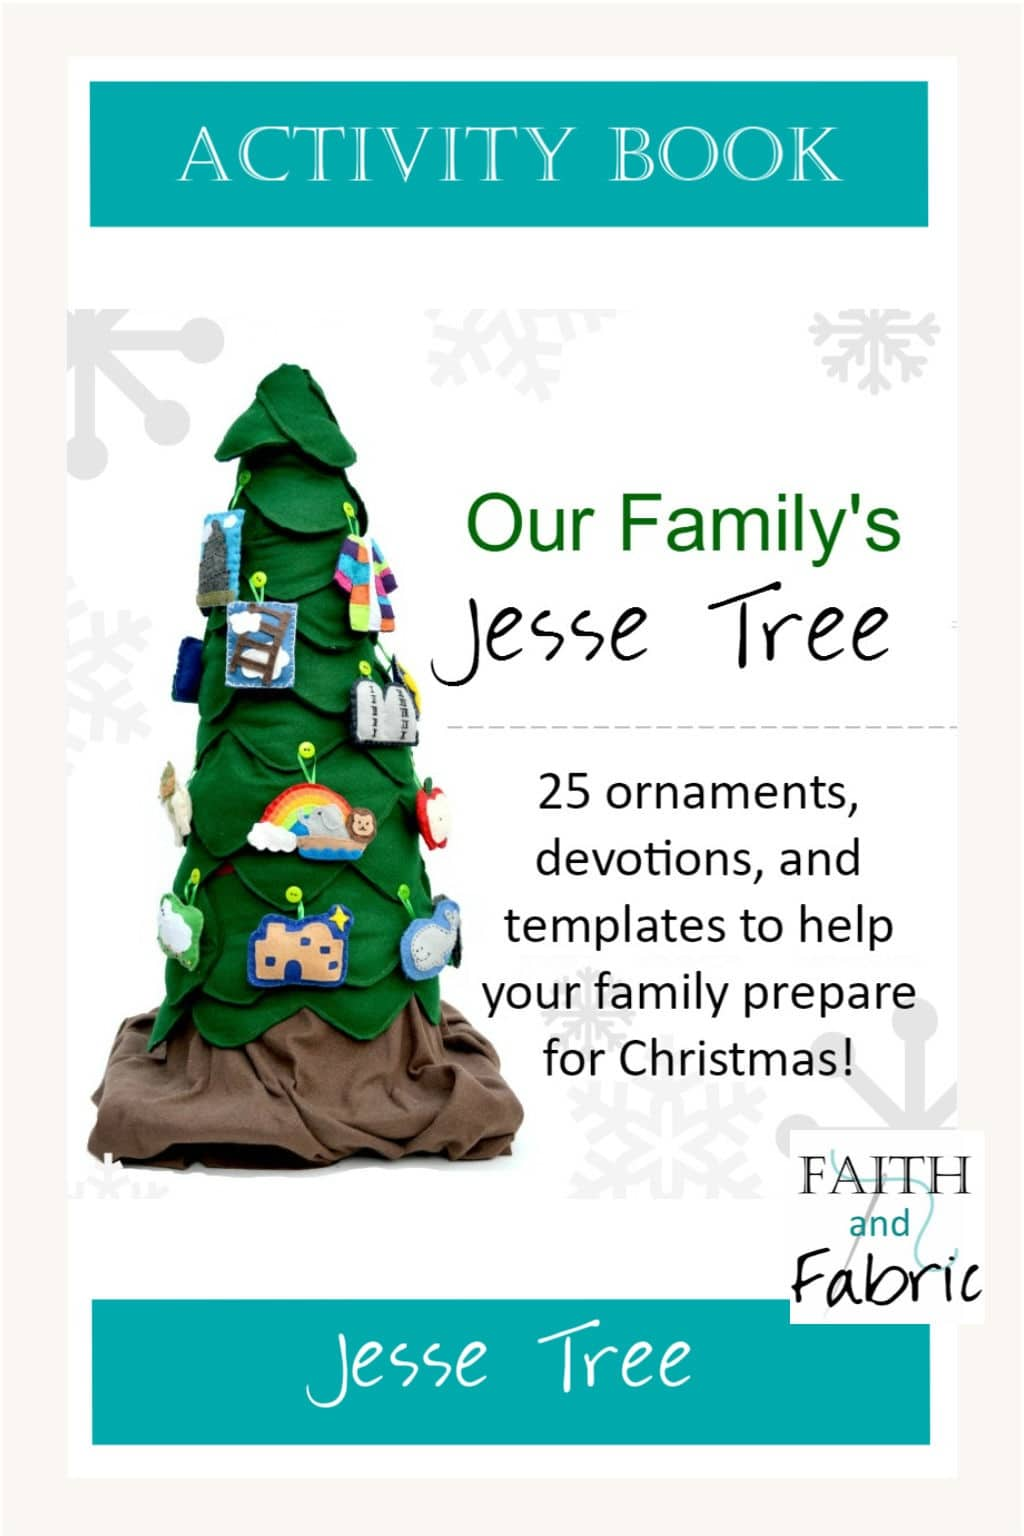 Our Family's Jesse Tree: 25 ornaments, devotions, and games to help your family prepare during Advent! You'll find Jesse Tree ideas, templates, and sewing patterns along with games for kids and prayers for the whole family inside.